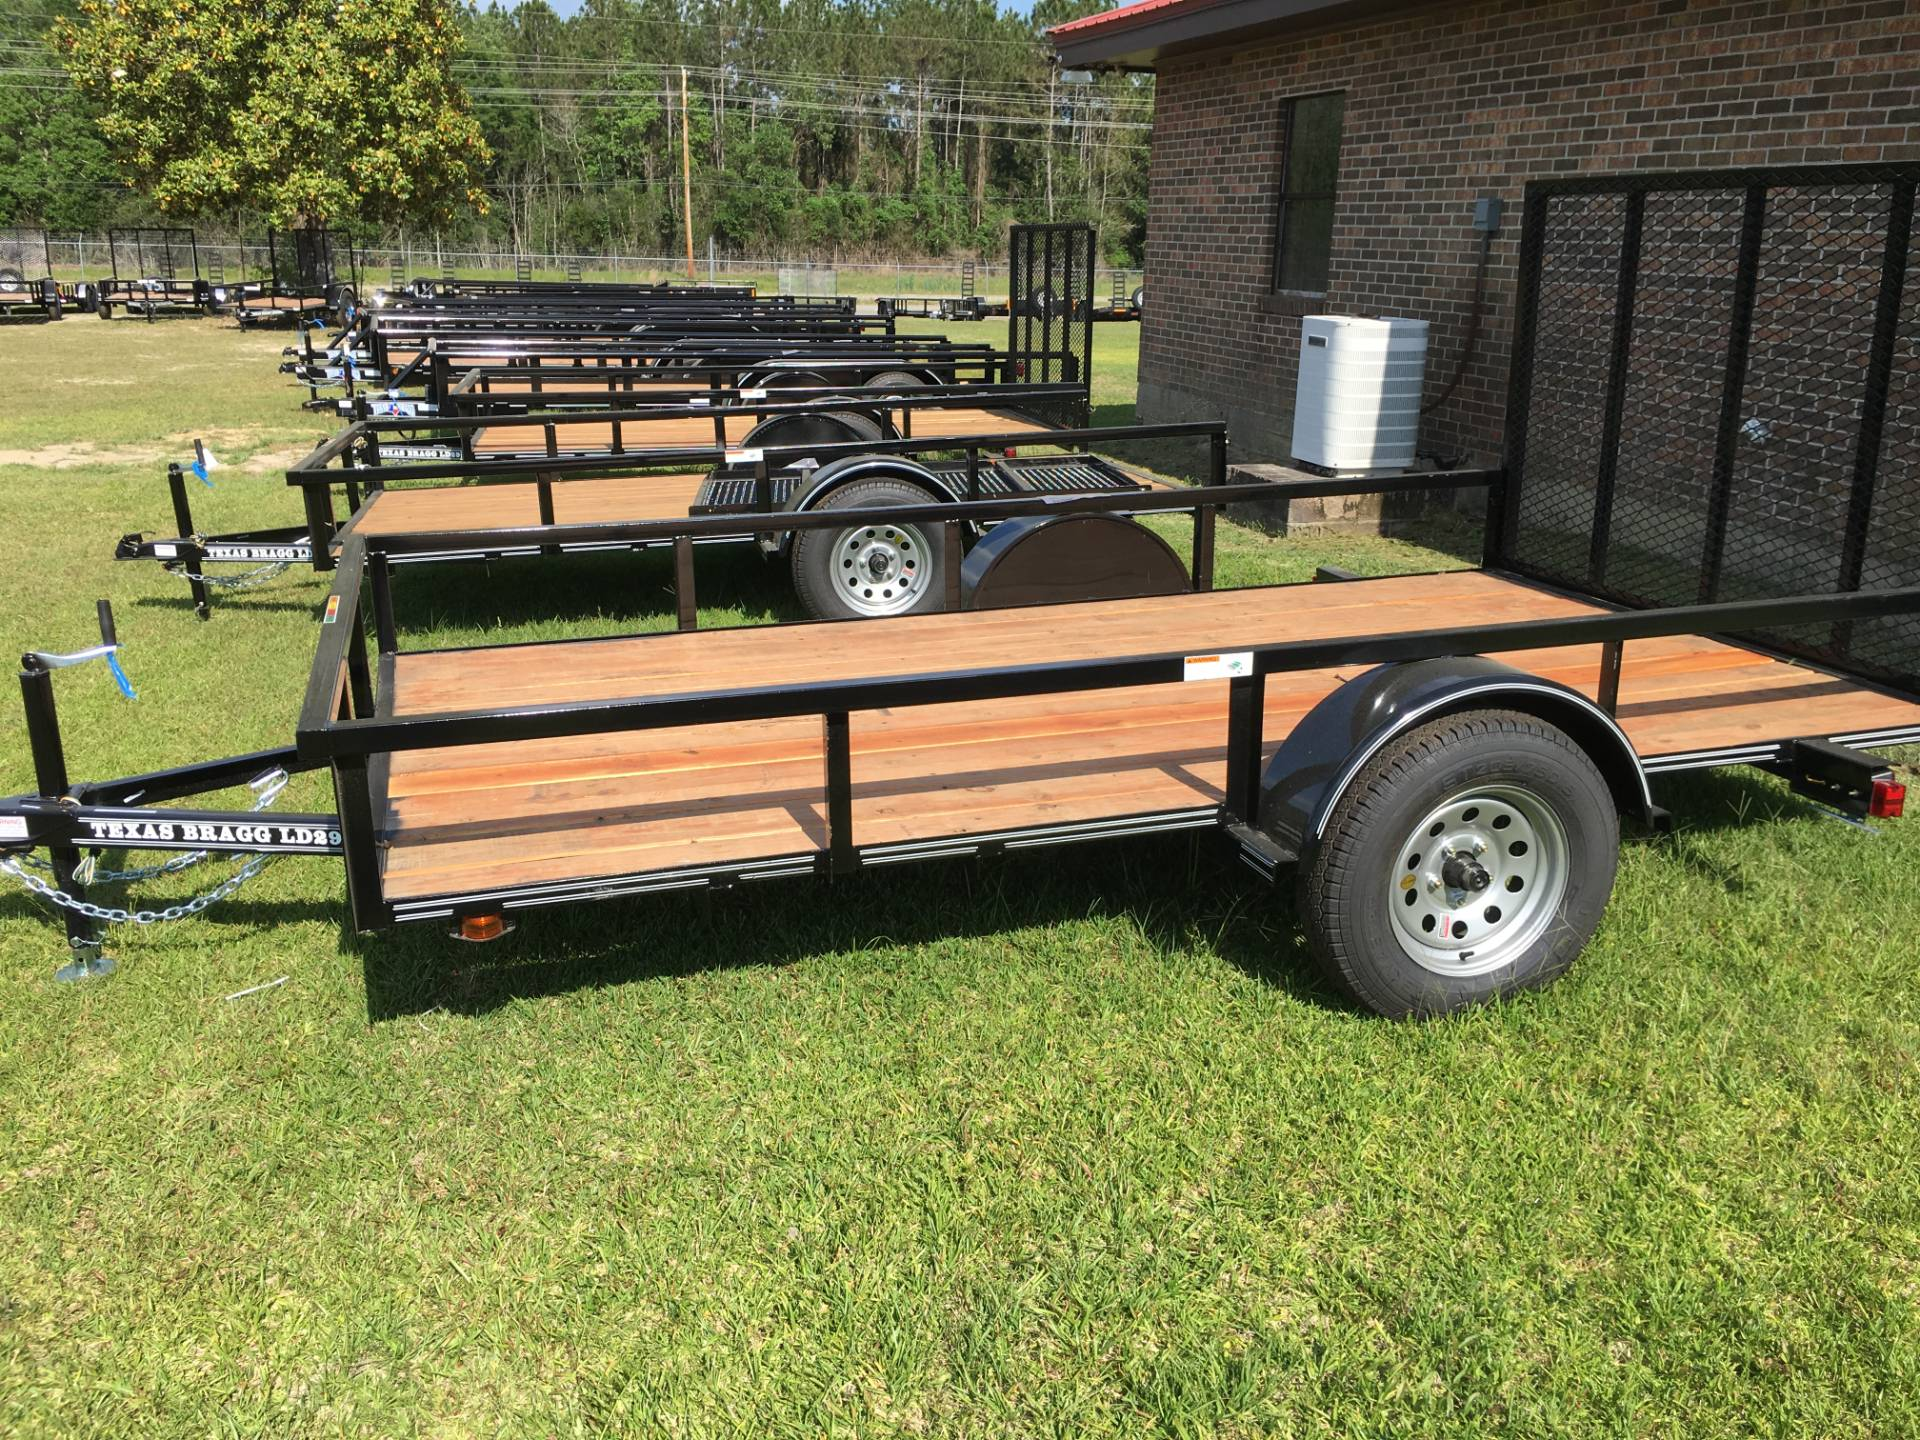 2018 Texas Bragg 6x12 LD, 4' Gate, Treated, LED in Saucier, Mississippi